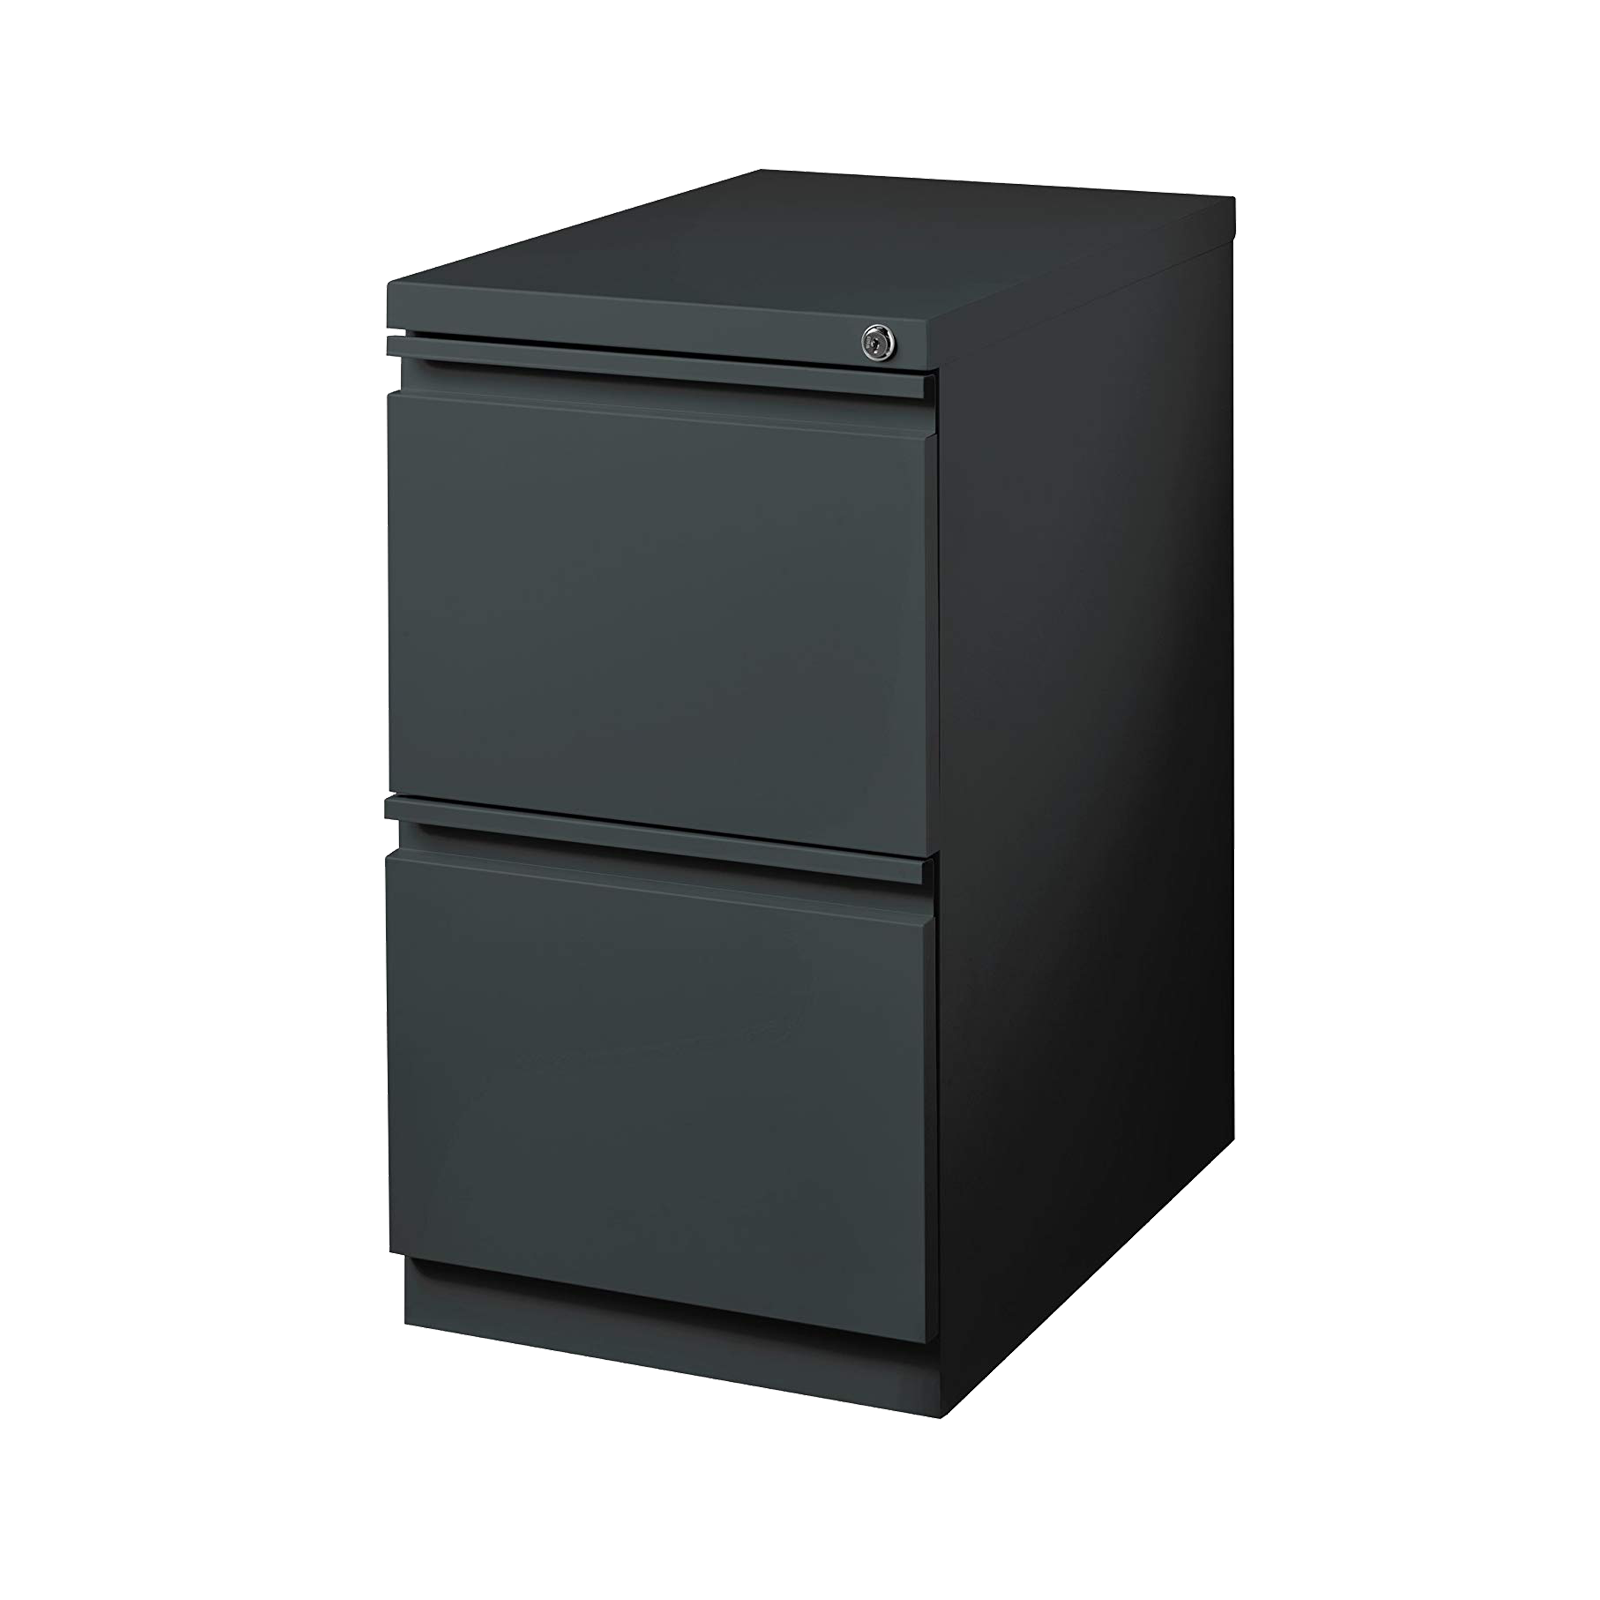 Premium 2-Drawer Mobile Locking Filing Cabinet/Pedestal - Black